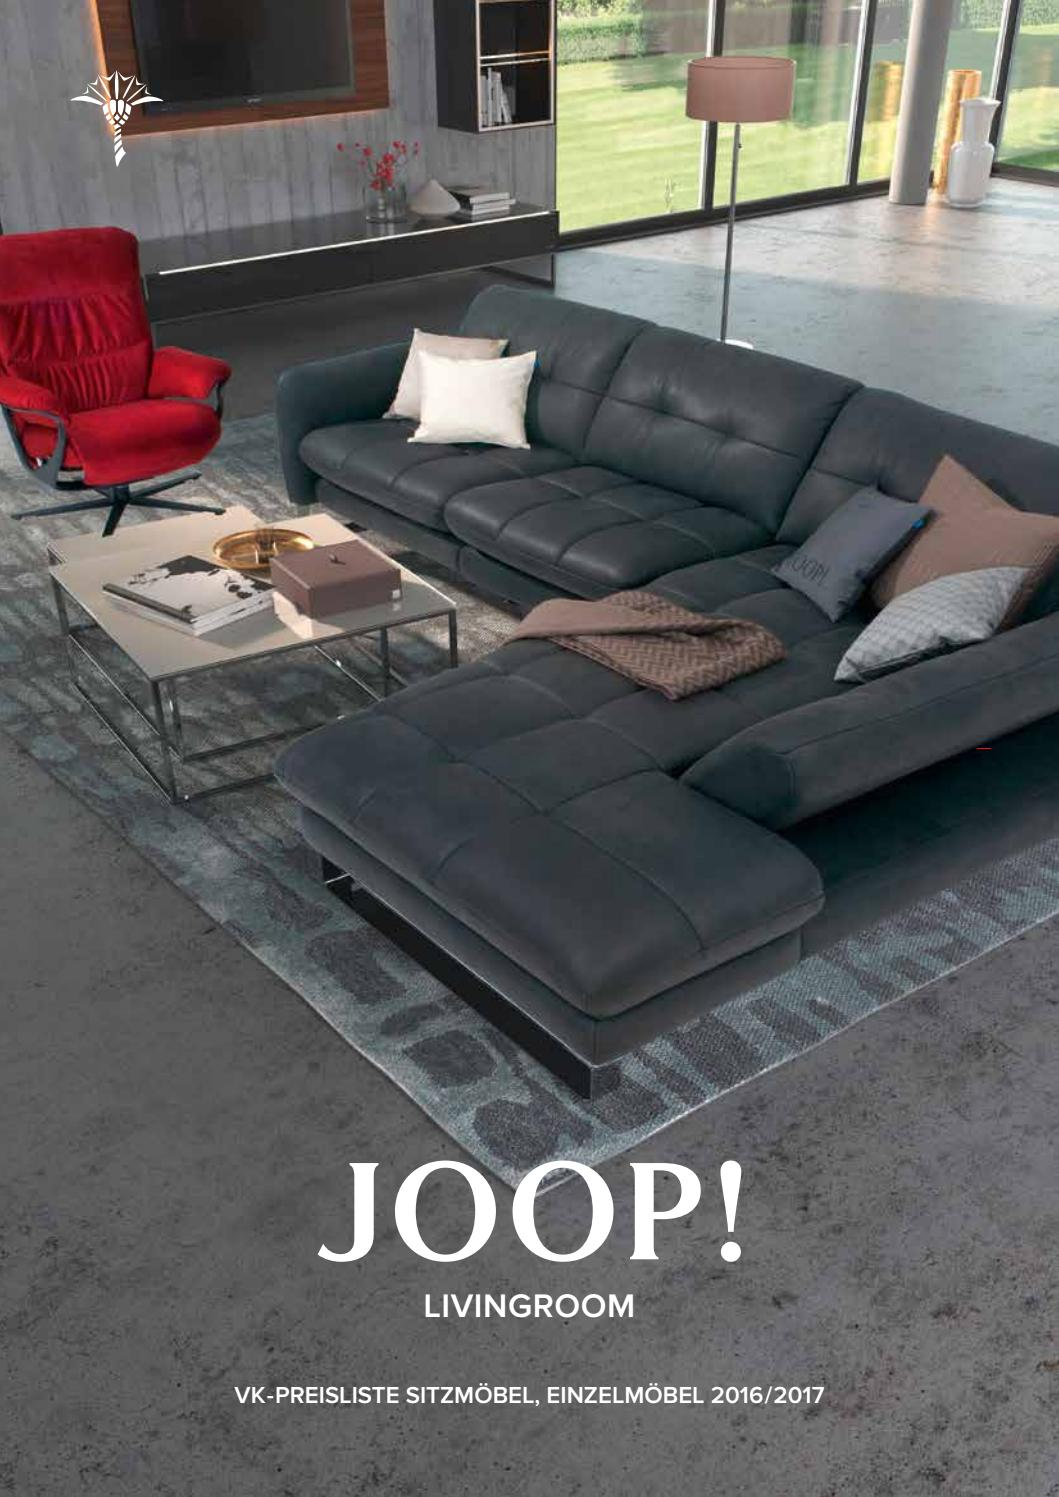 detailed images detailed images outlet Joop - Living 2017 by Perspektive Werbeagentur - issuu